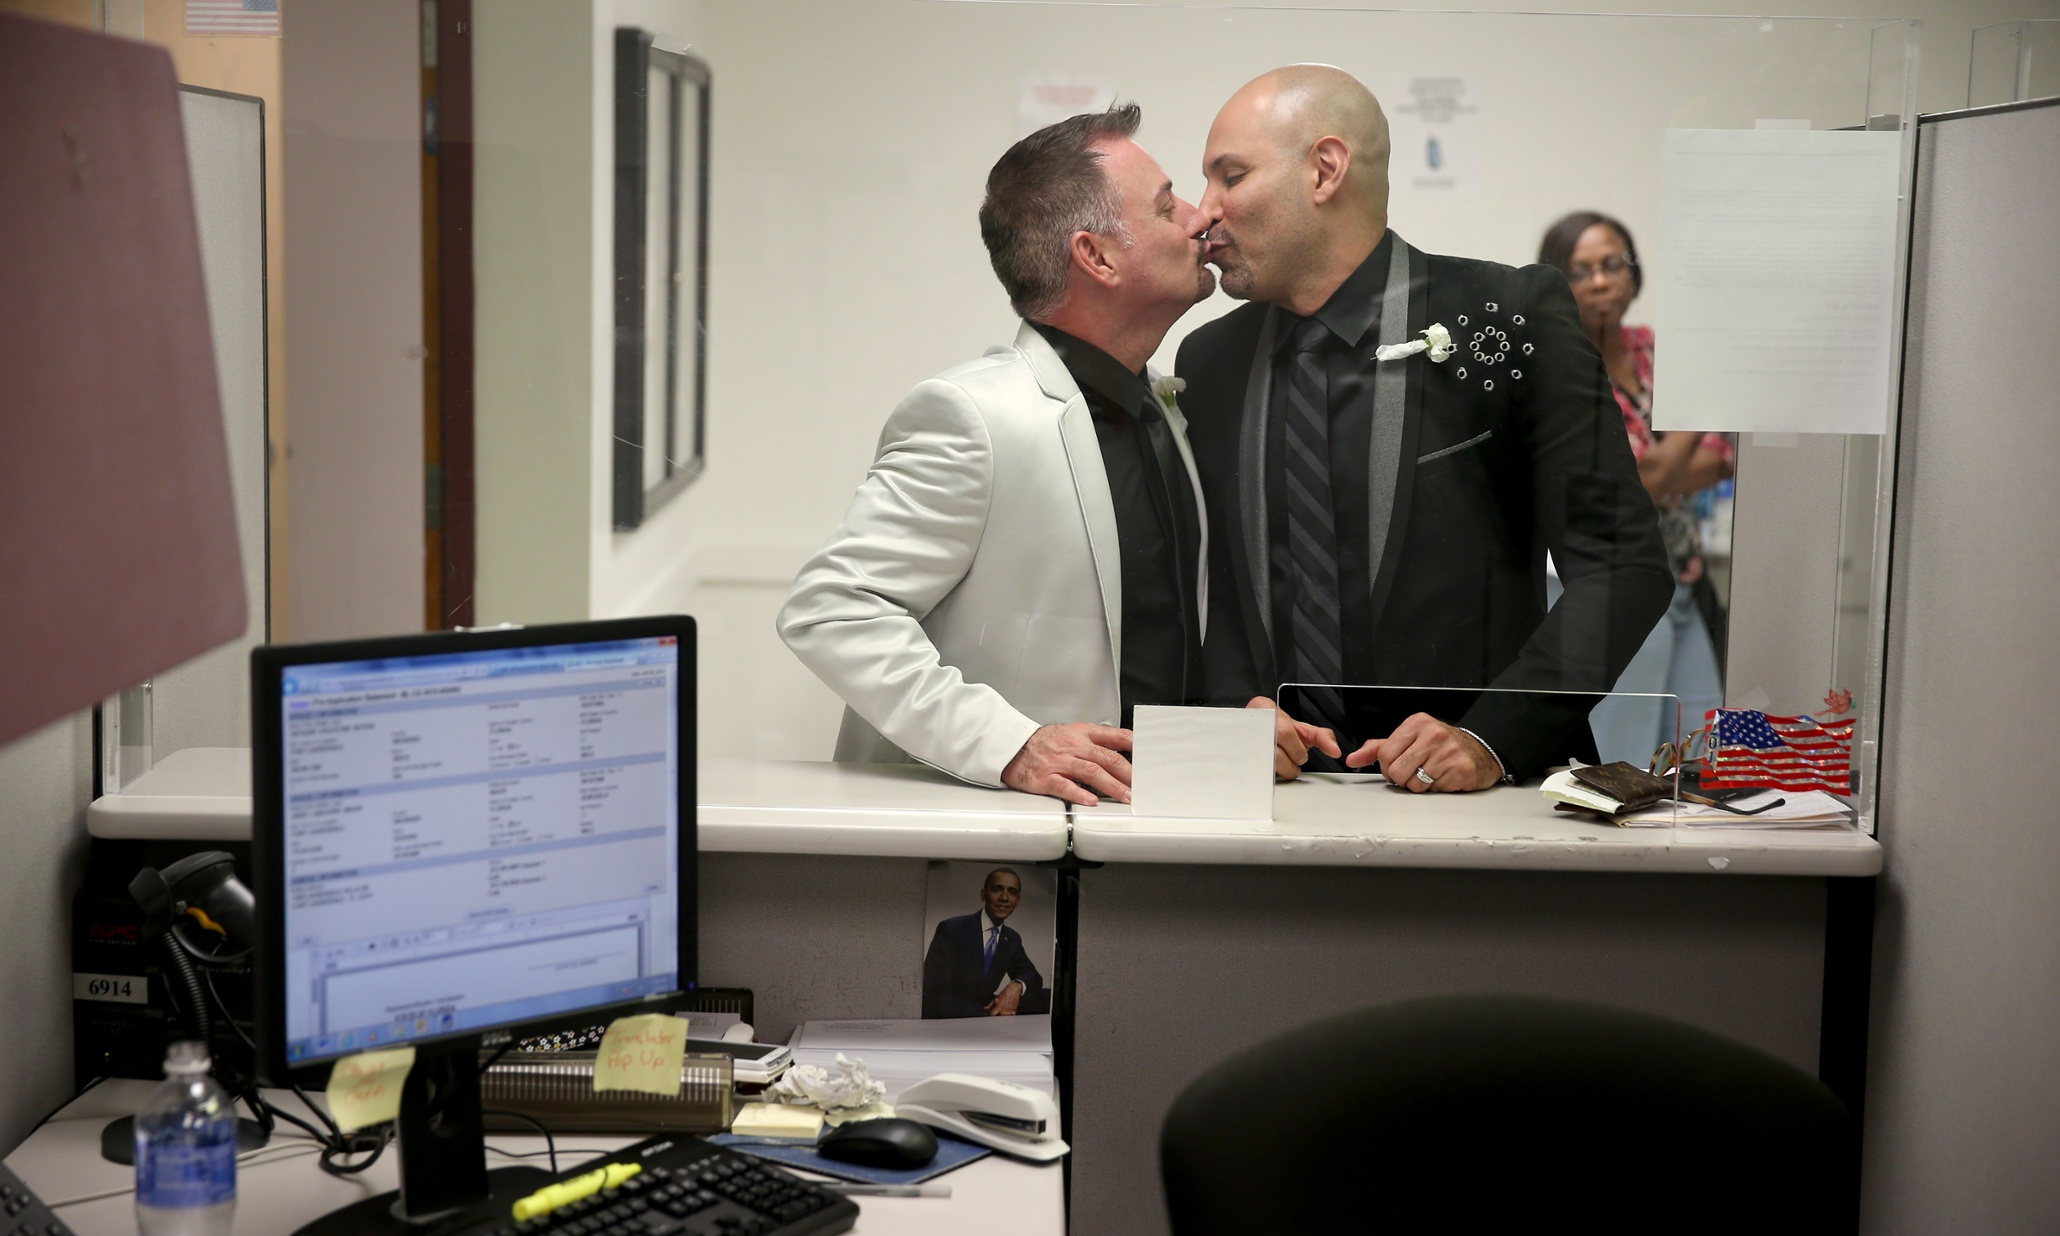 Broward County Marriage License, FL